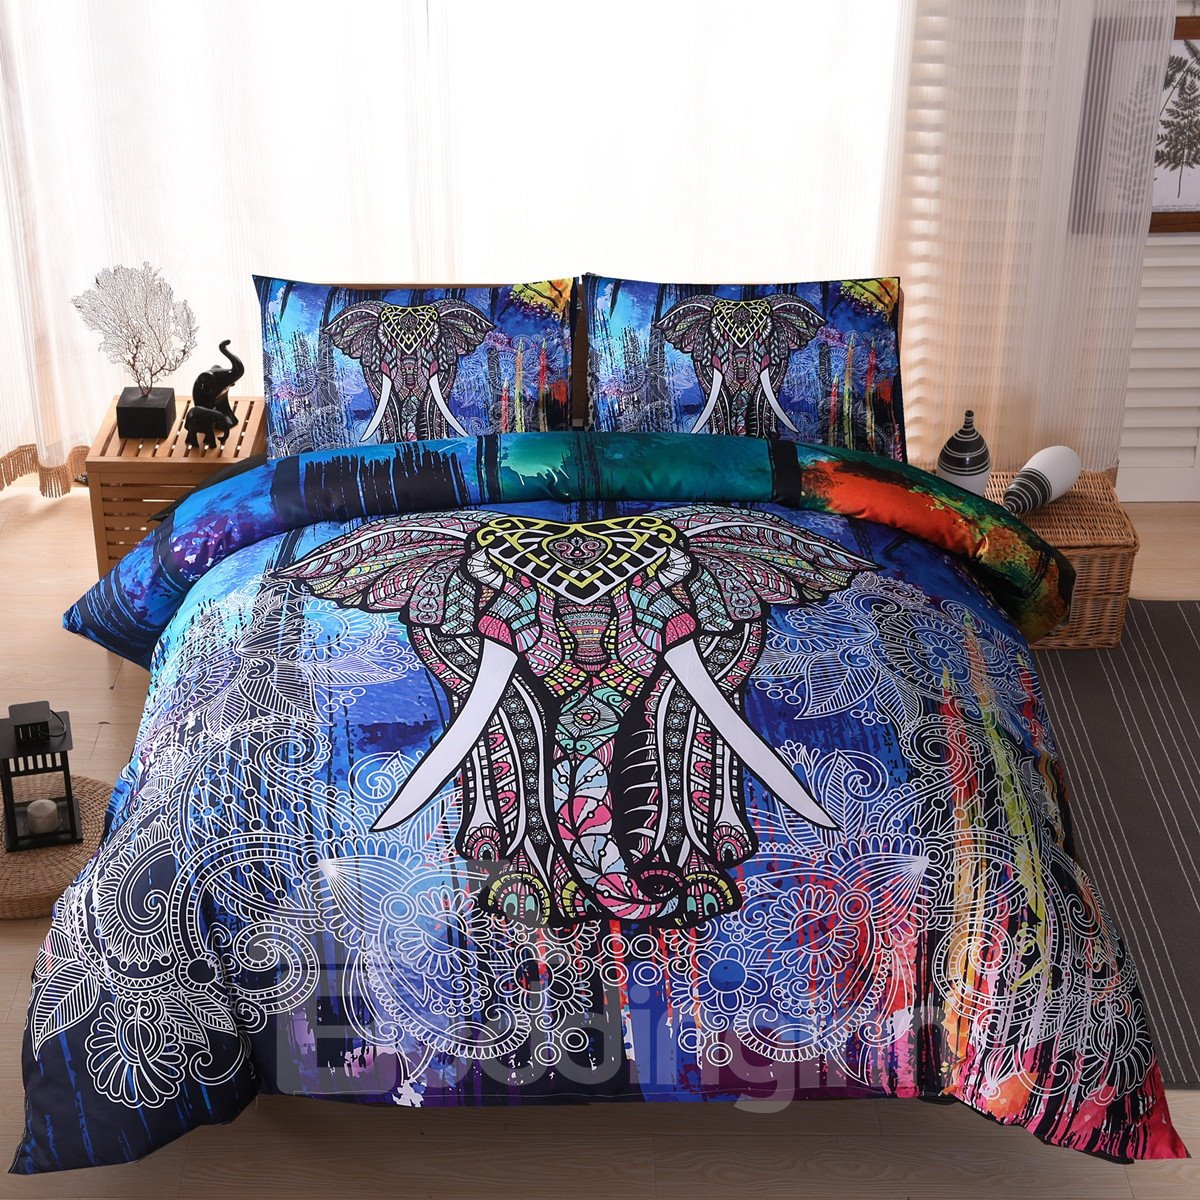 3D Colorful Elephant Printed Ethnic Style Polyester 3-Piece Bedding Sets/Duvet Covers